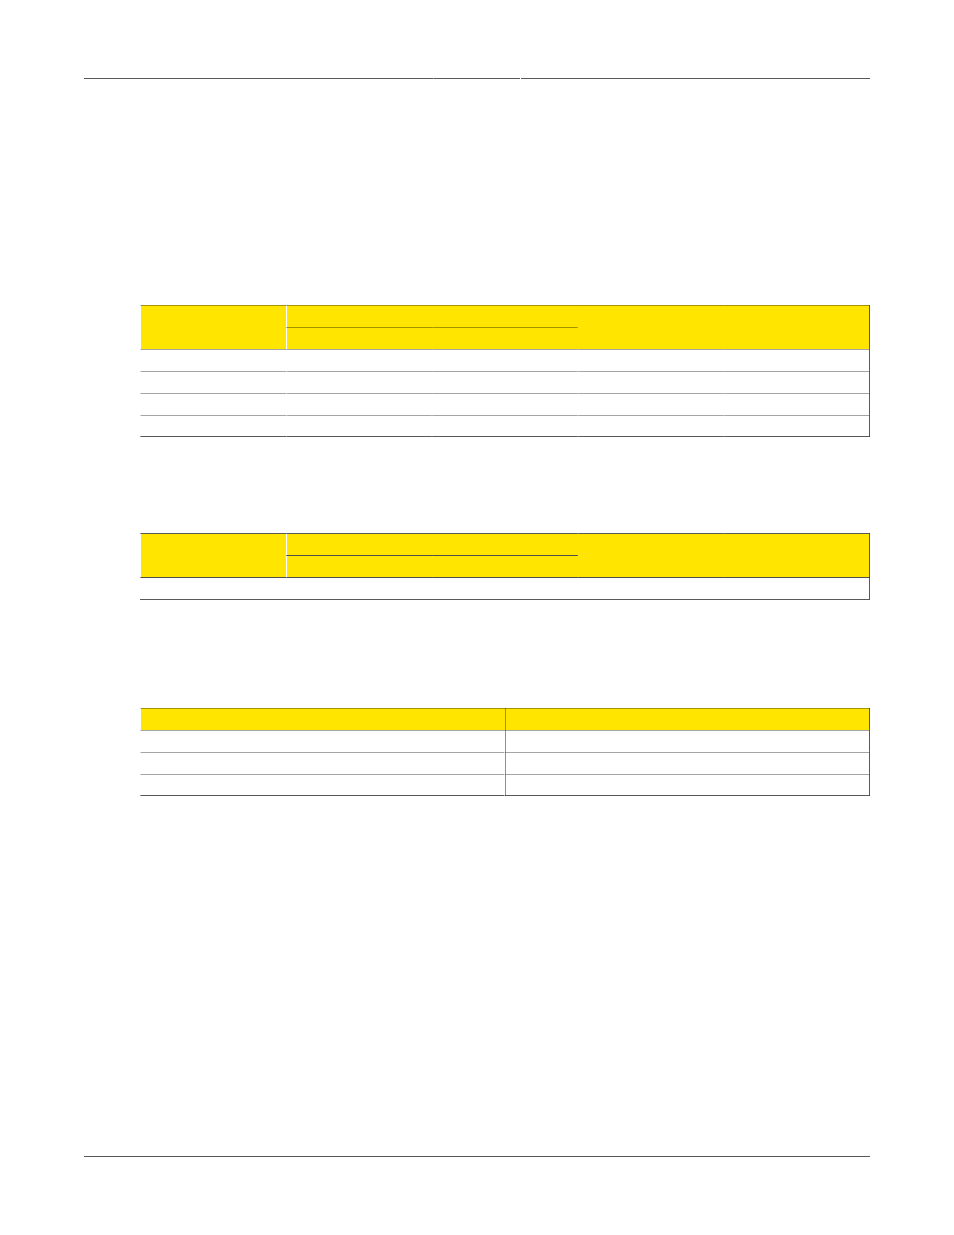 Technical Specifications Power Supply Failsafe Relay Usage Ruggedcom Rsg2300 User Manual Page 26 36